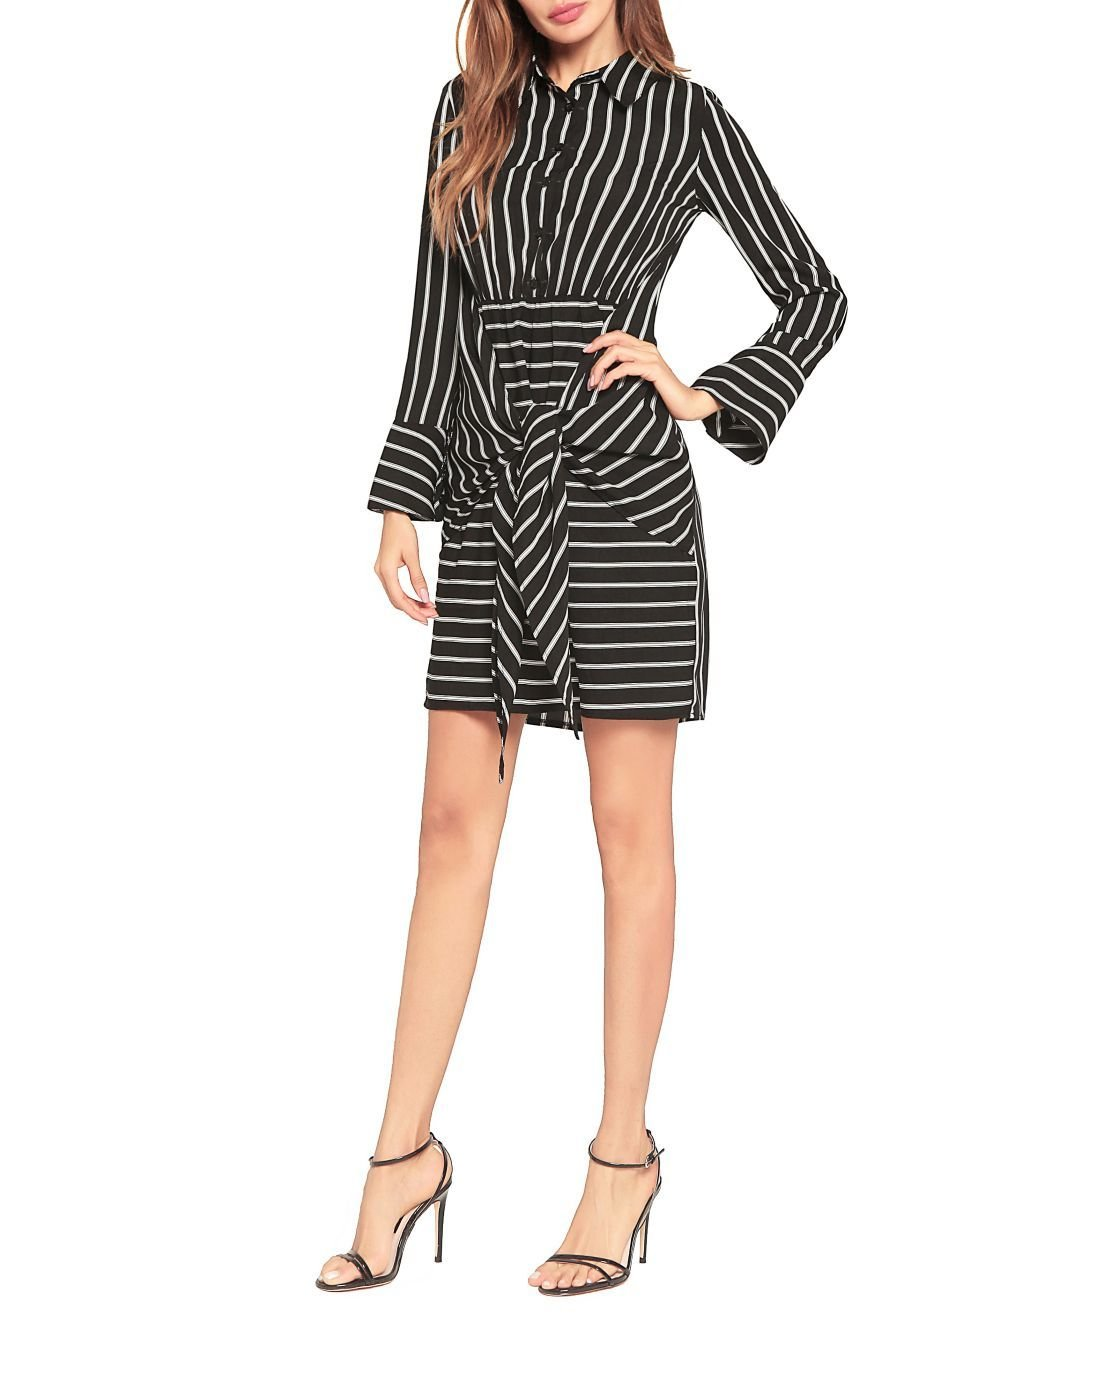 Striped Dress with Tie-Front Skirt